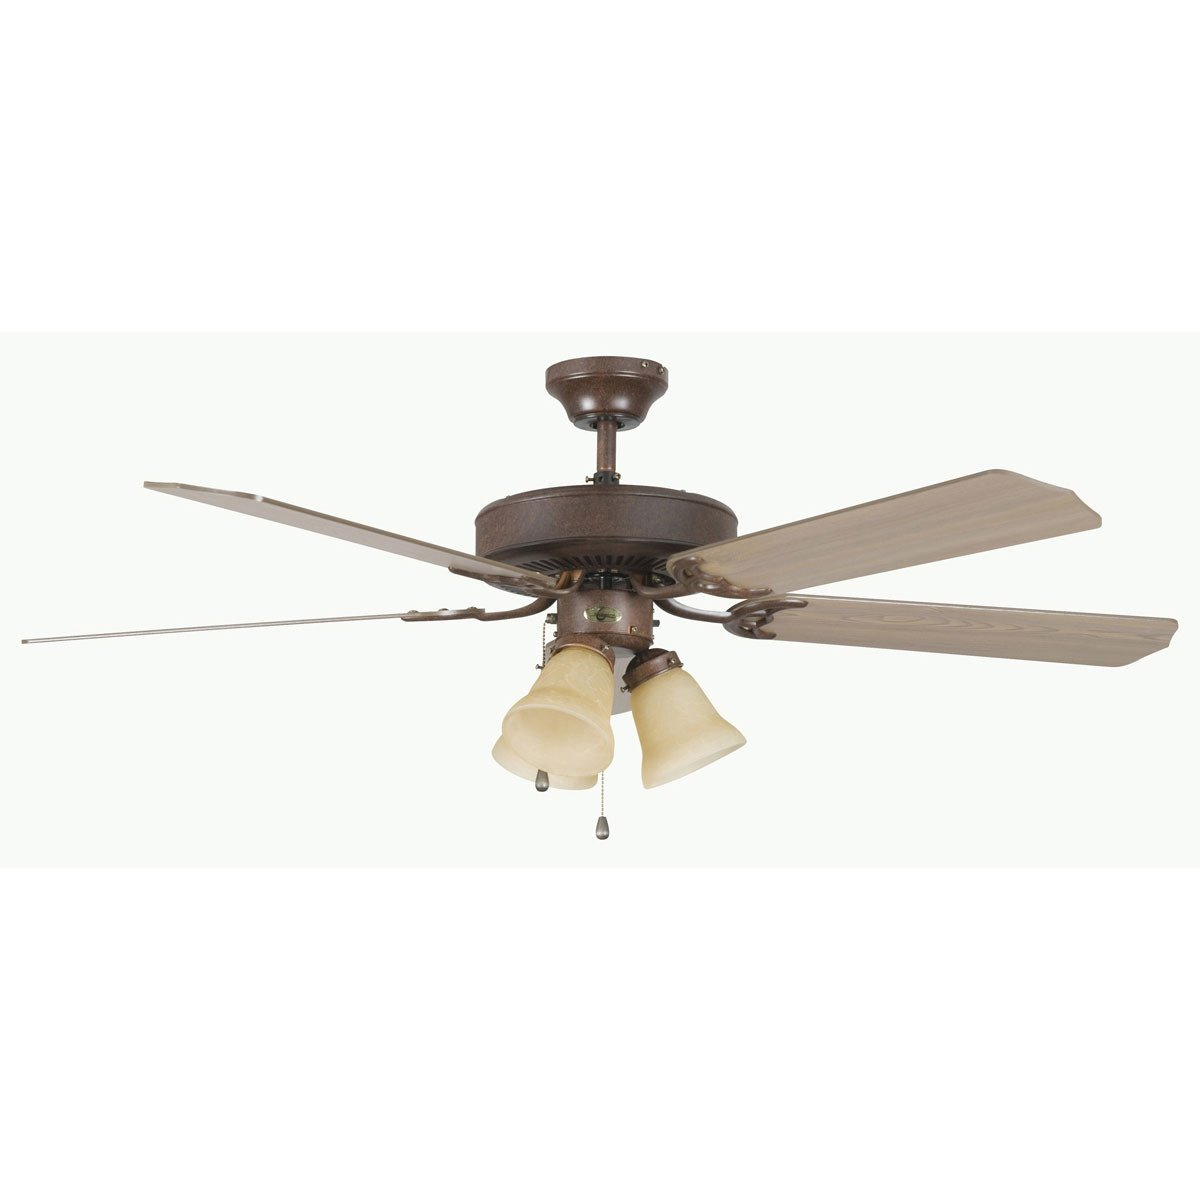 "Concord Fans 52"" Heritage Home Elegant Rubbed Bronze Ceiling Fan with 3 Lights"